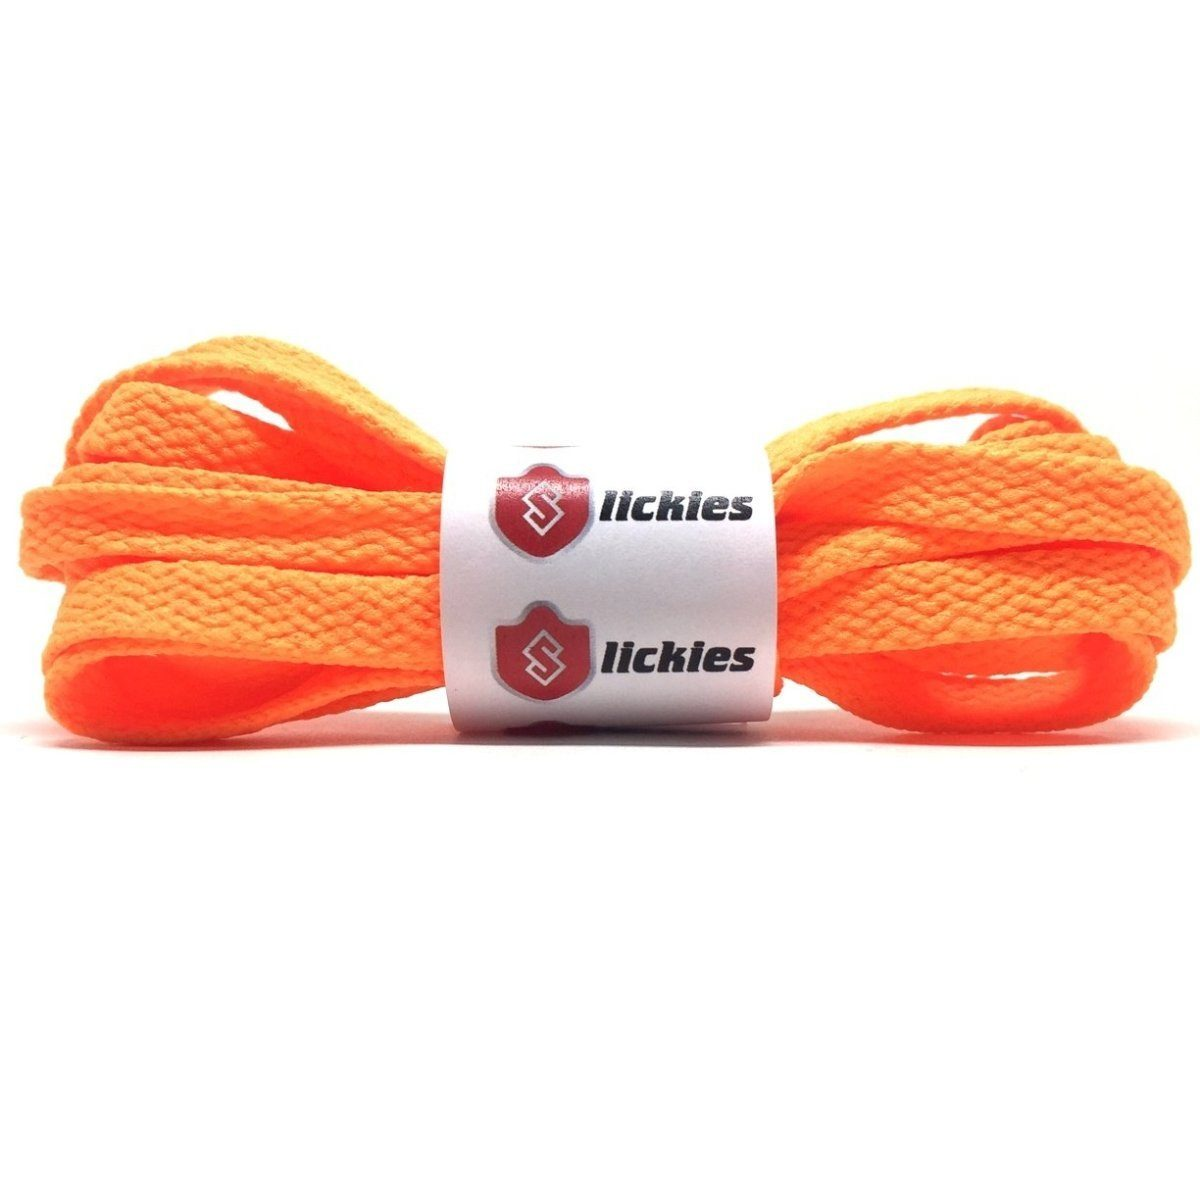 Flat Thin - BASICS Flat Thin Laces - Vibrant Orange